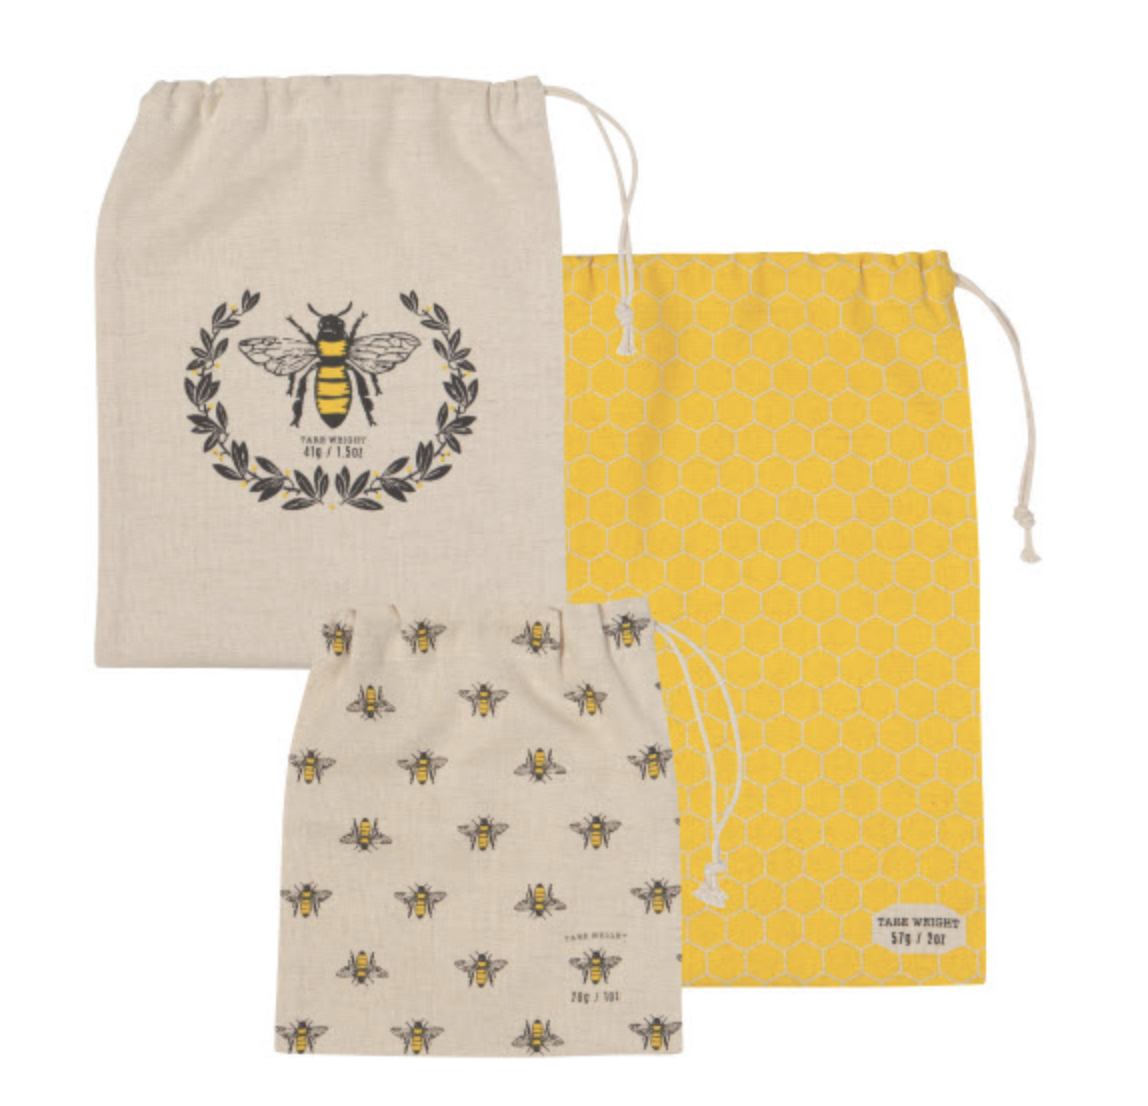 Busy Bee Reuseable Cotton Produce Bags, set/3